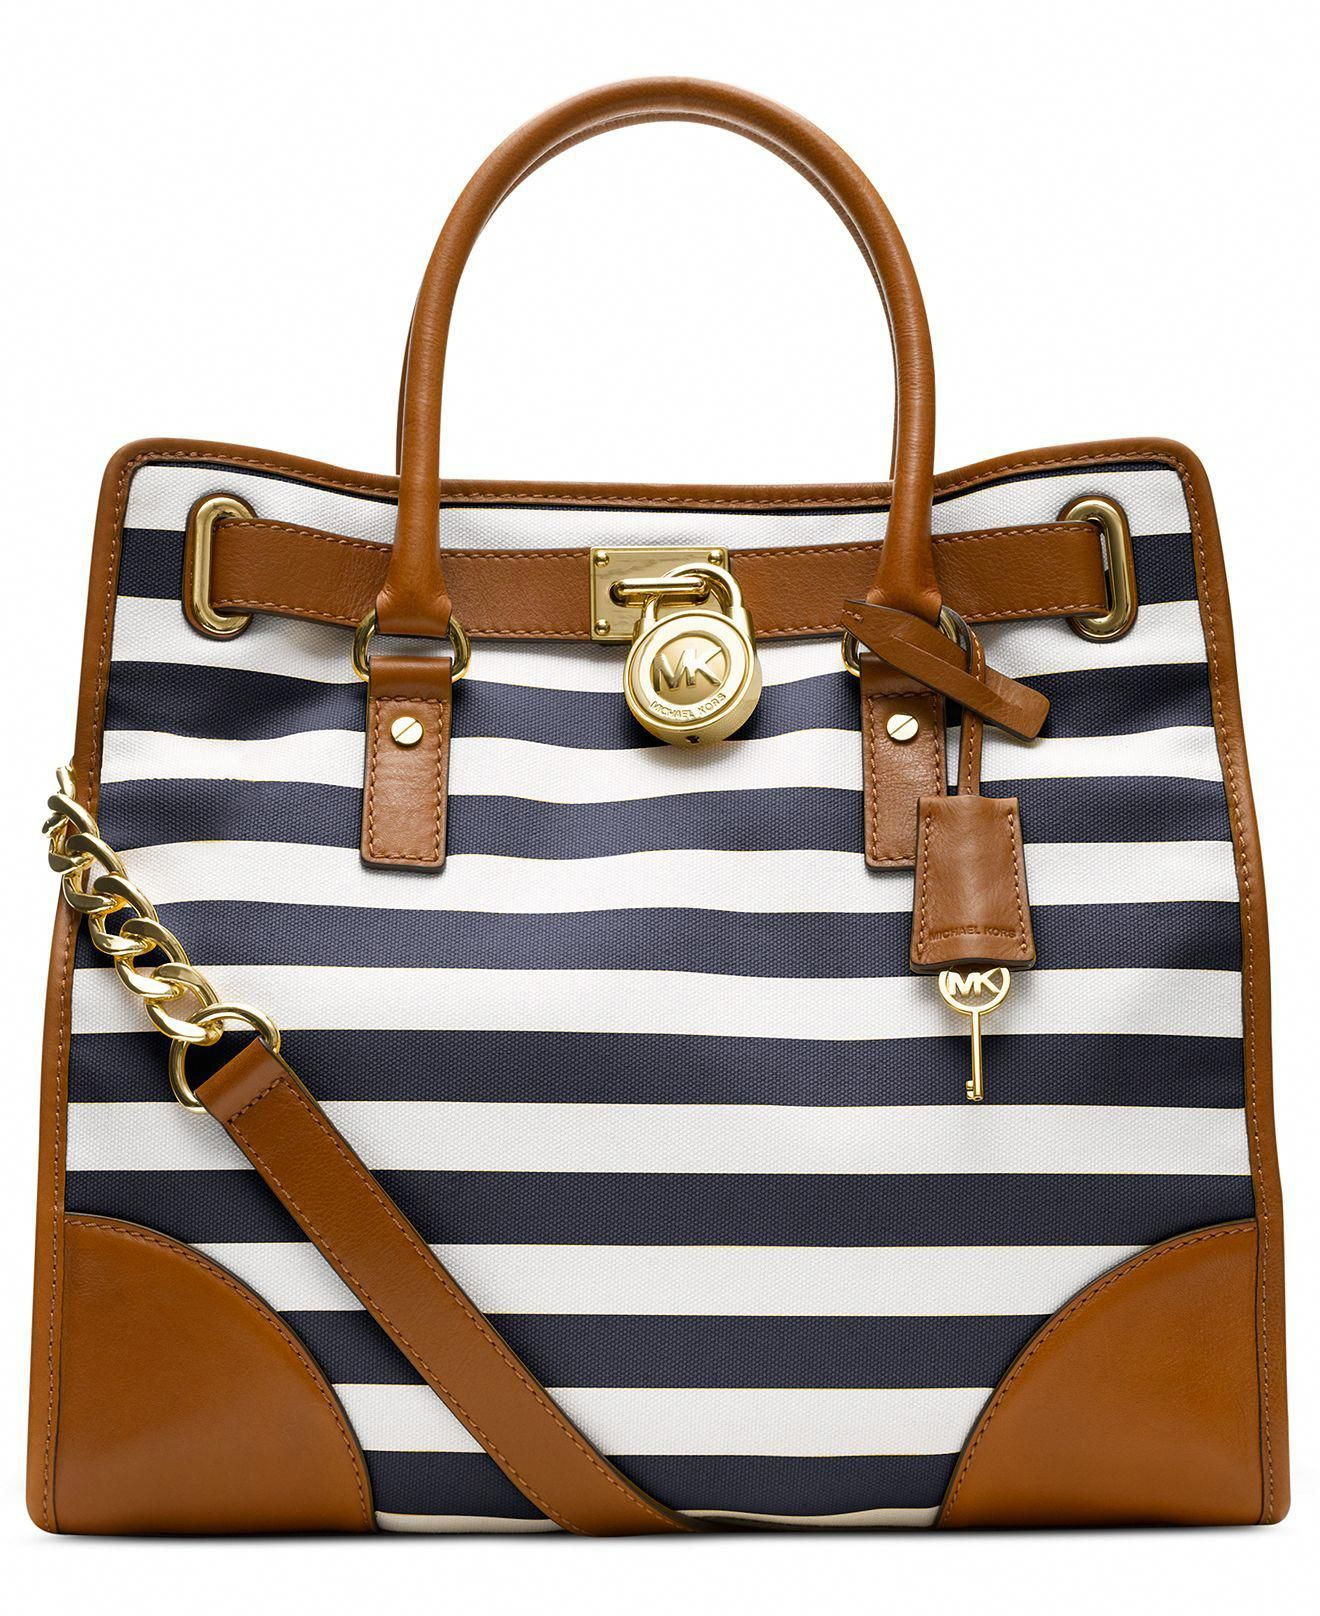 michael michael kors handbag hamilton large stripe north south tote rh pinterest com